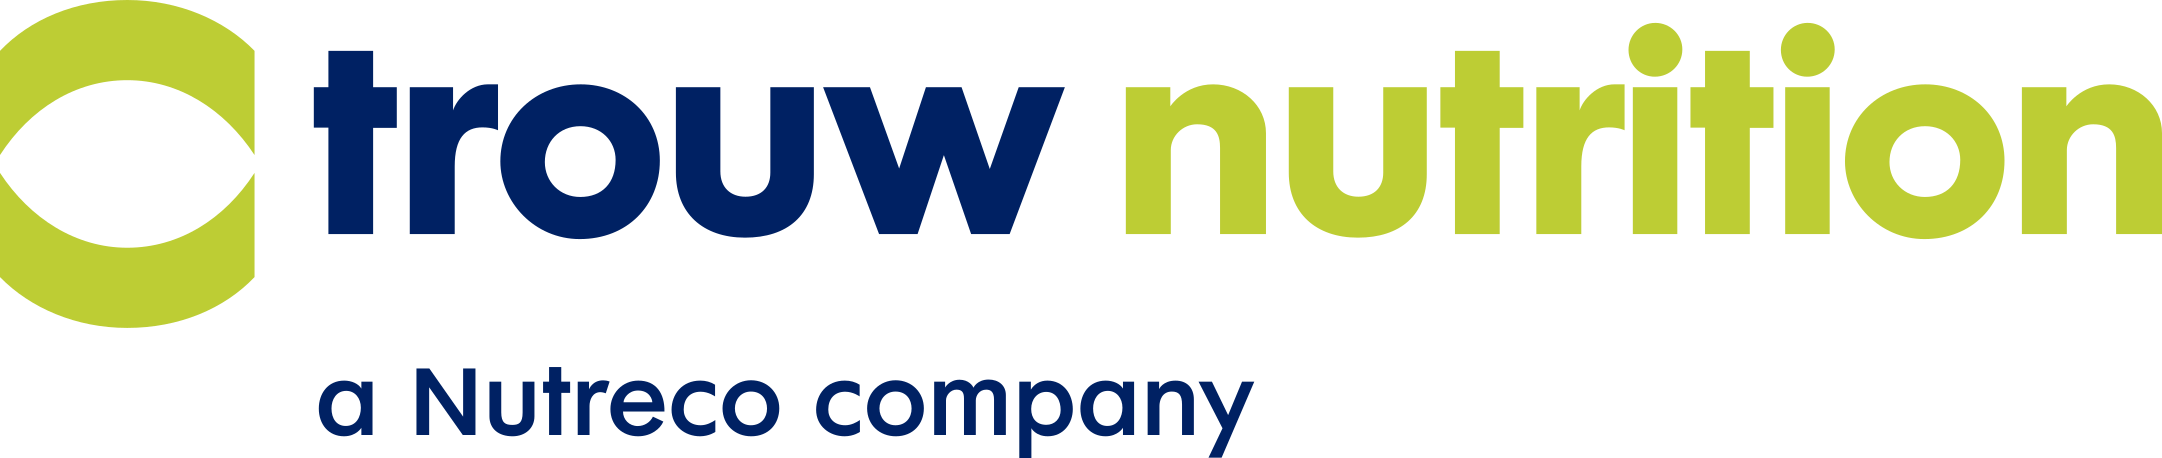 trouw nutrition logo 1 - Trouw Nutrition Logo